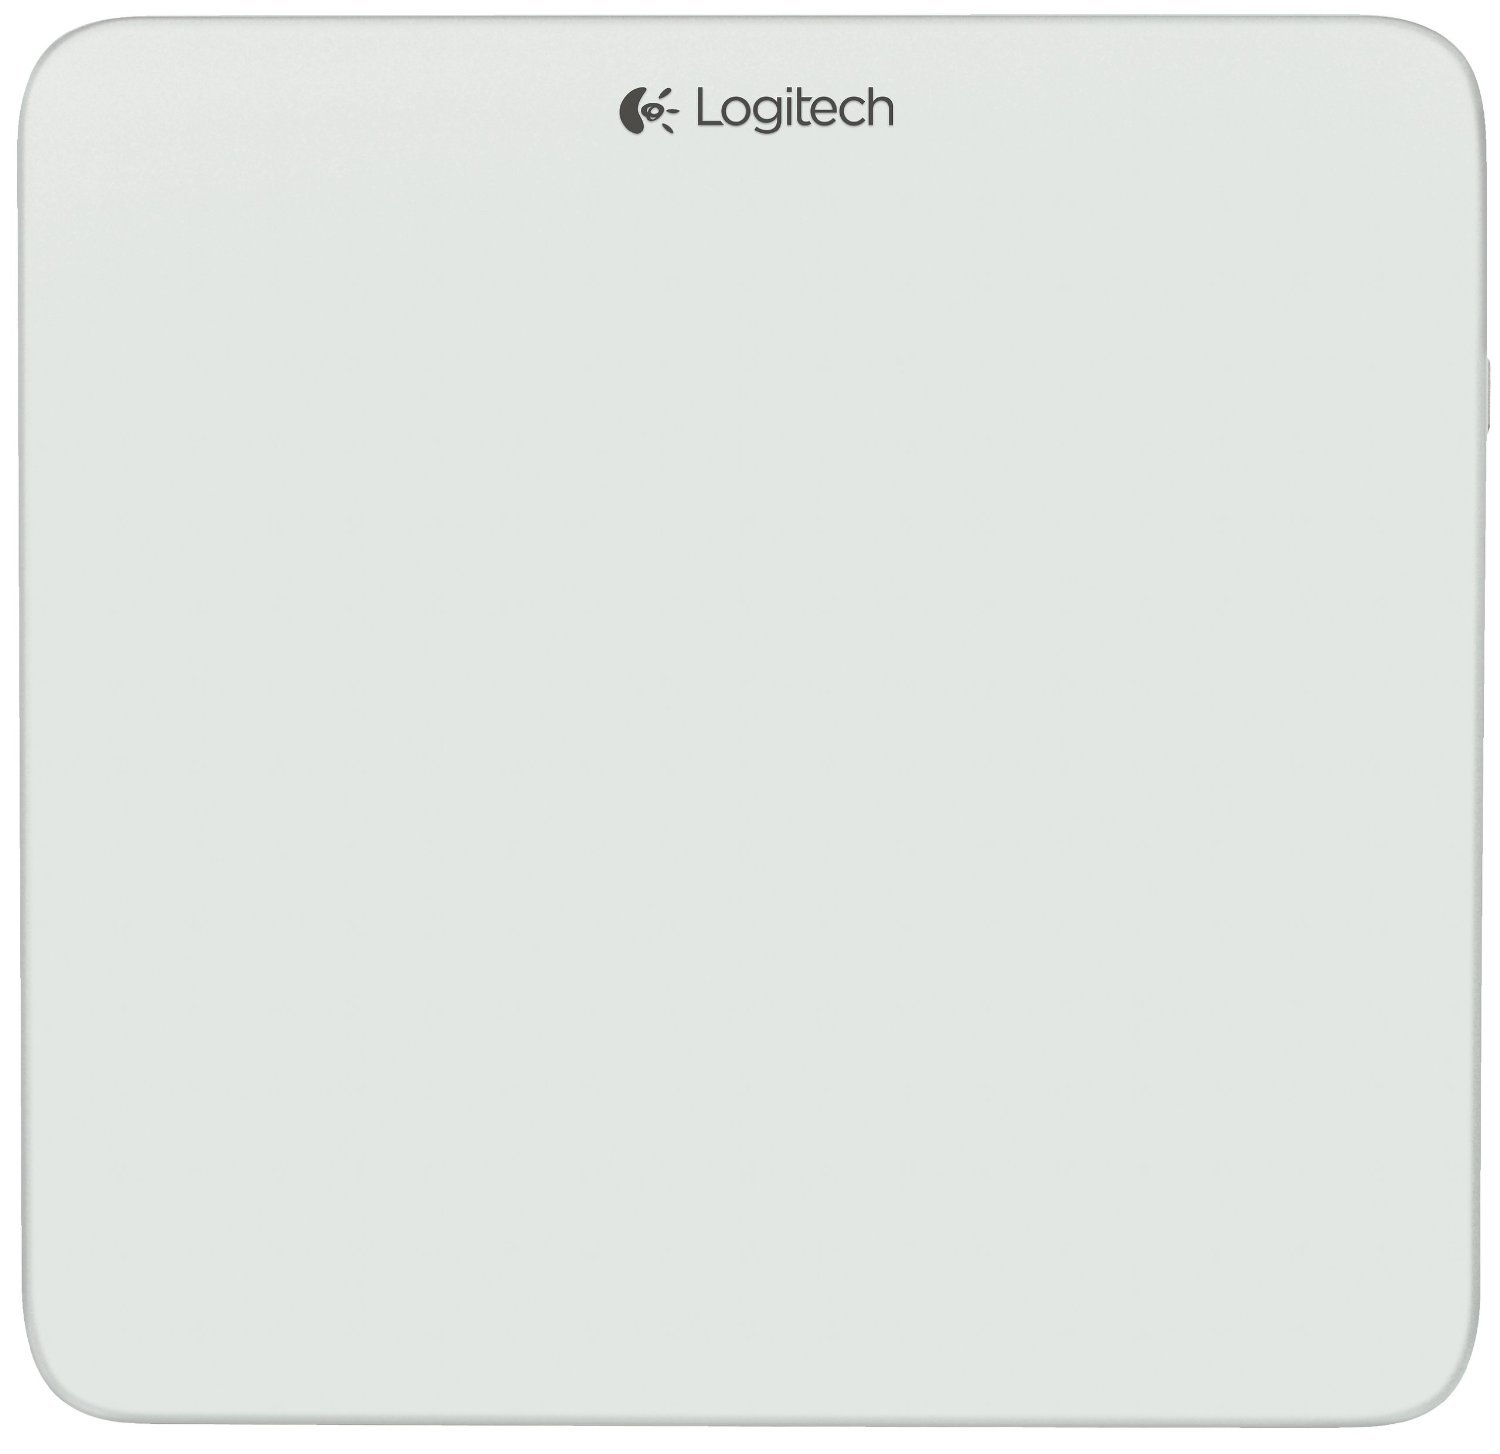 Logitech Rechargeable Trackpad for Mac by Logitech